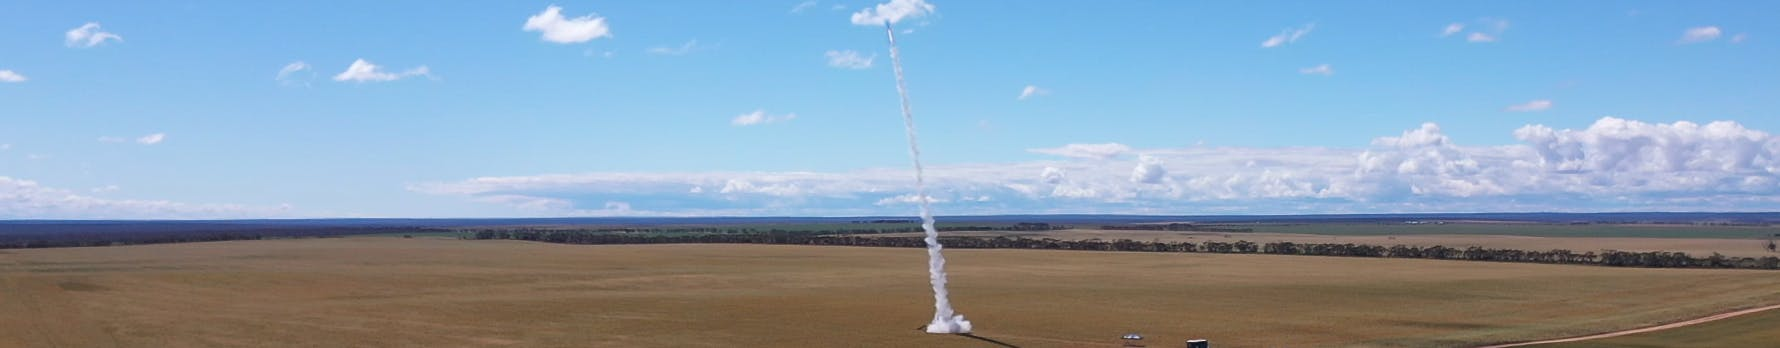 Rocket taking off from country South Australia